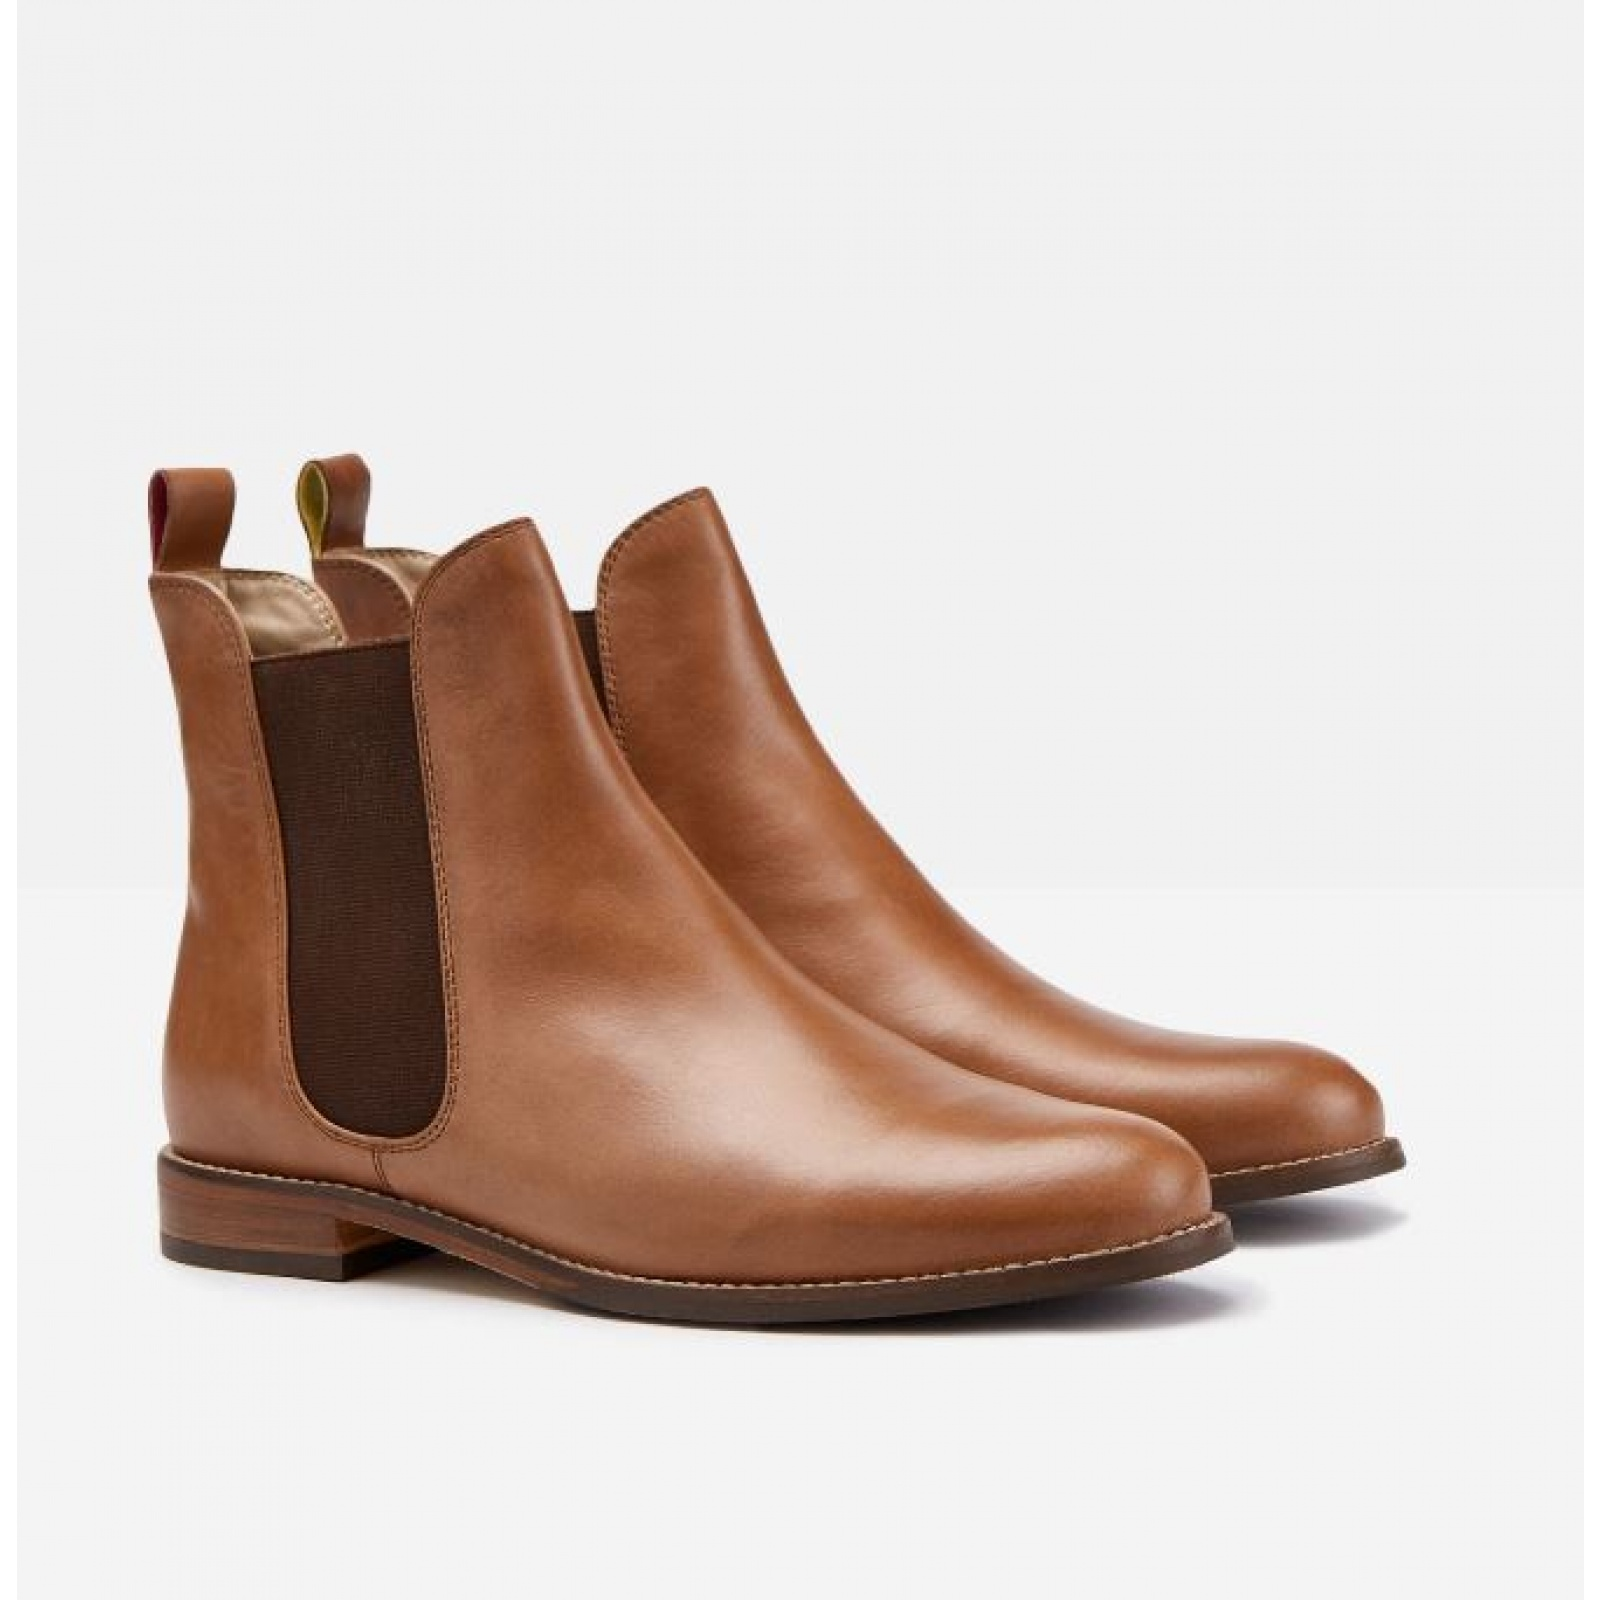 Joules-Westbourne-Premium-Leather-Chelsea-Boot-ALL-COLOURS miniature 22